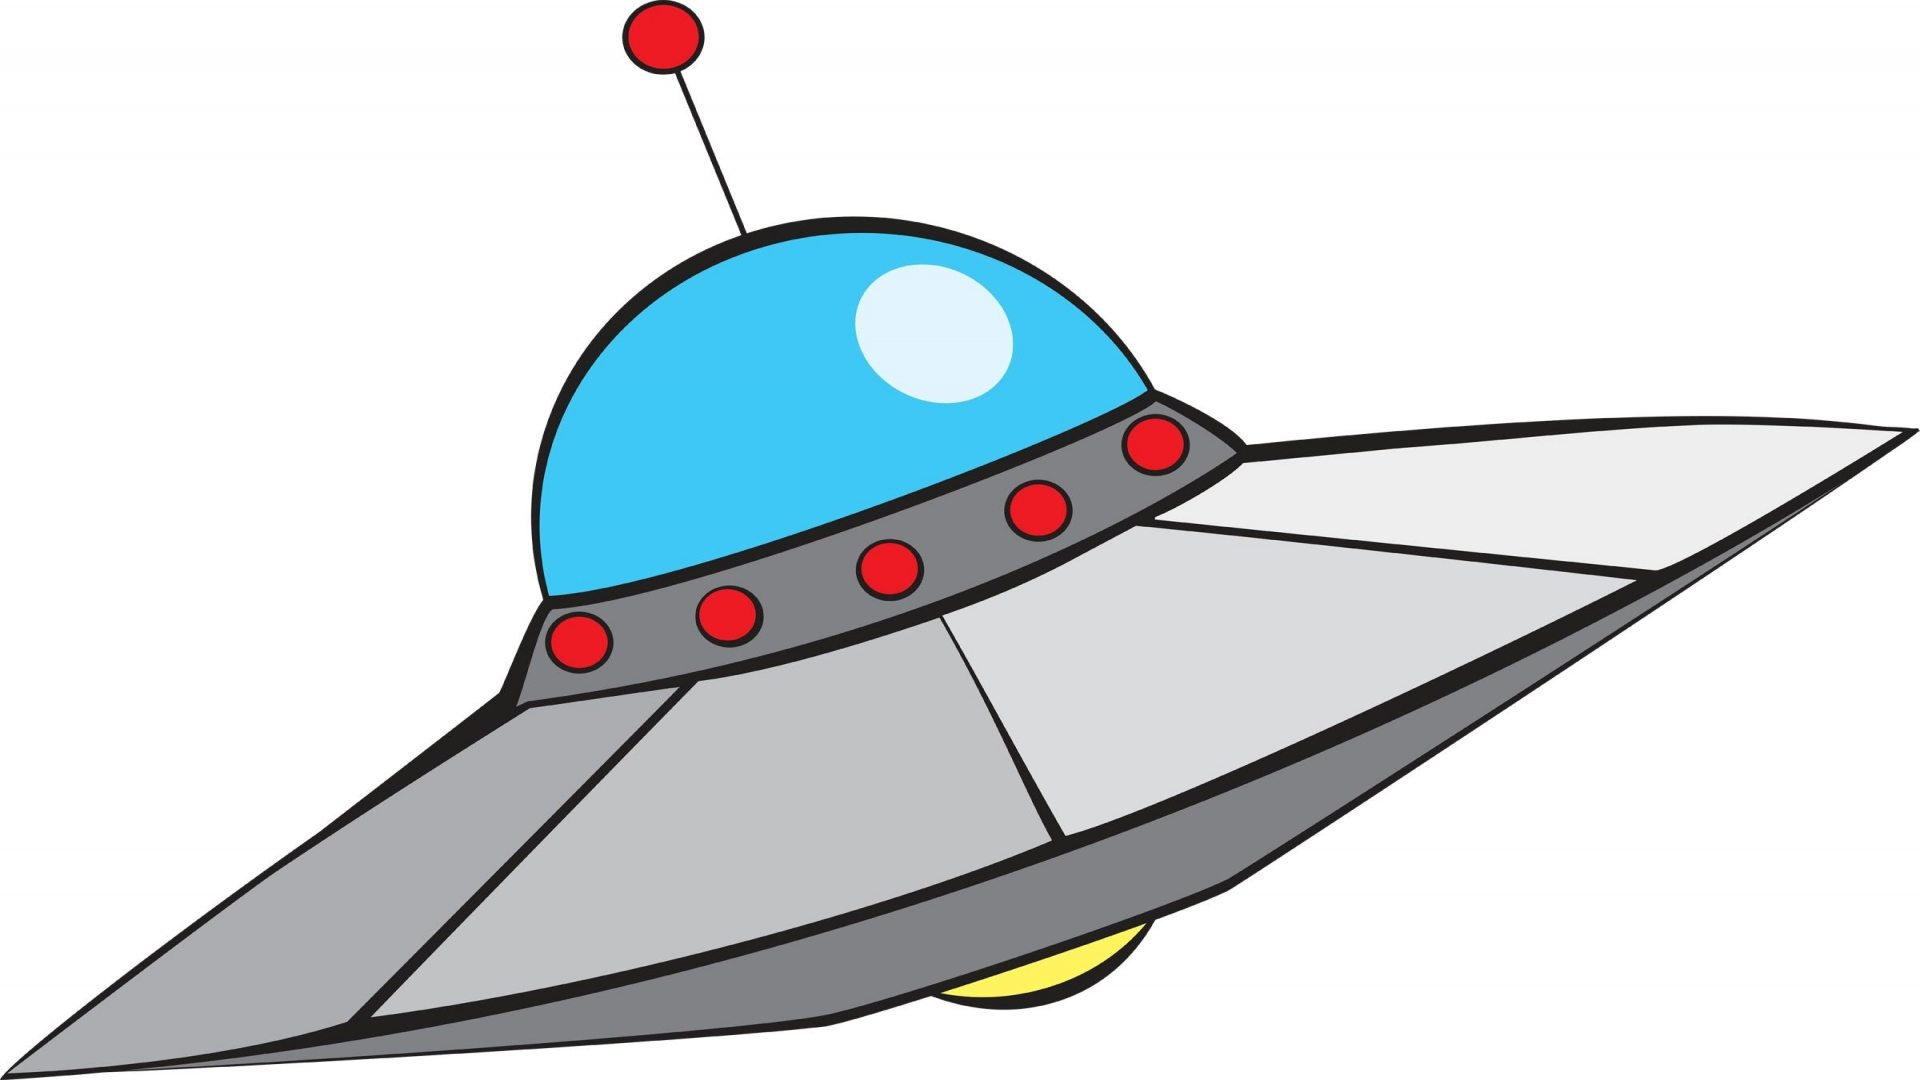 space ship clipart at getdrawings com free for personal use space rh getdrawings com alien spaceship clipart spaceship clipart black and white